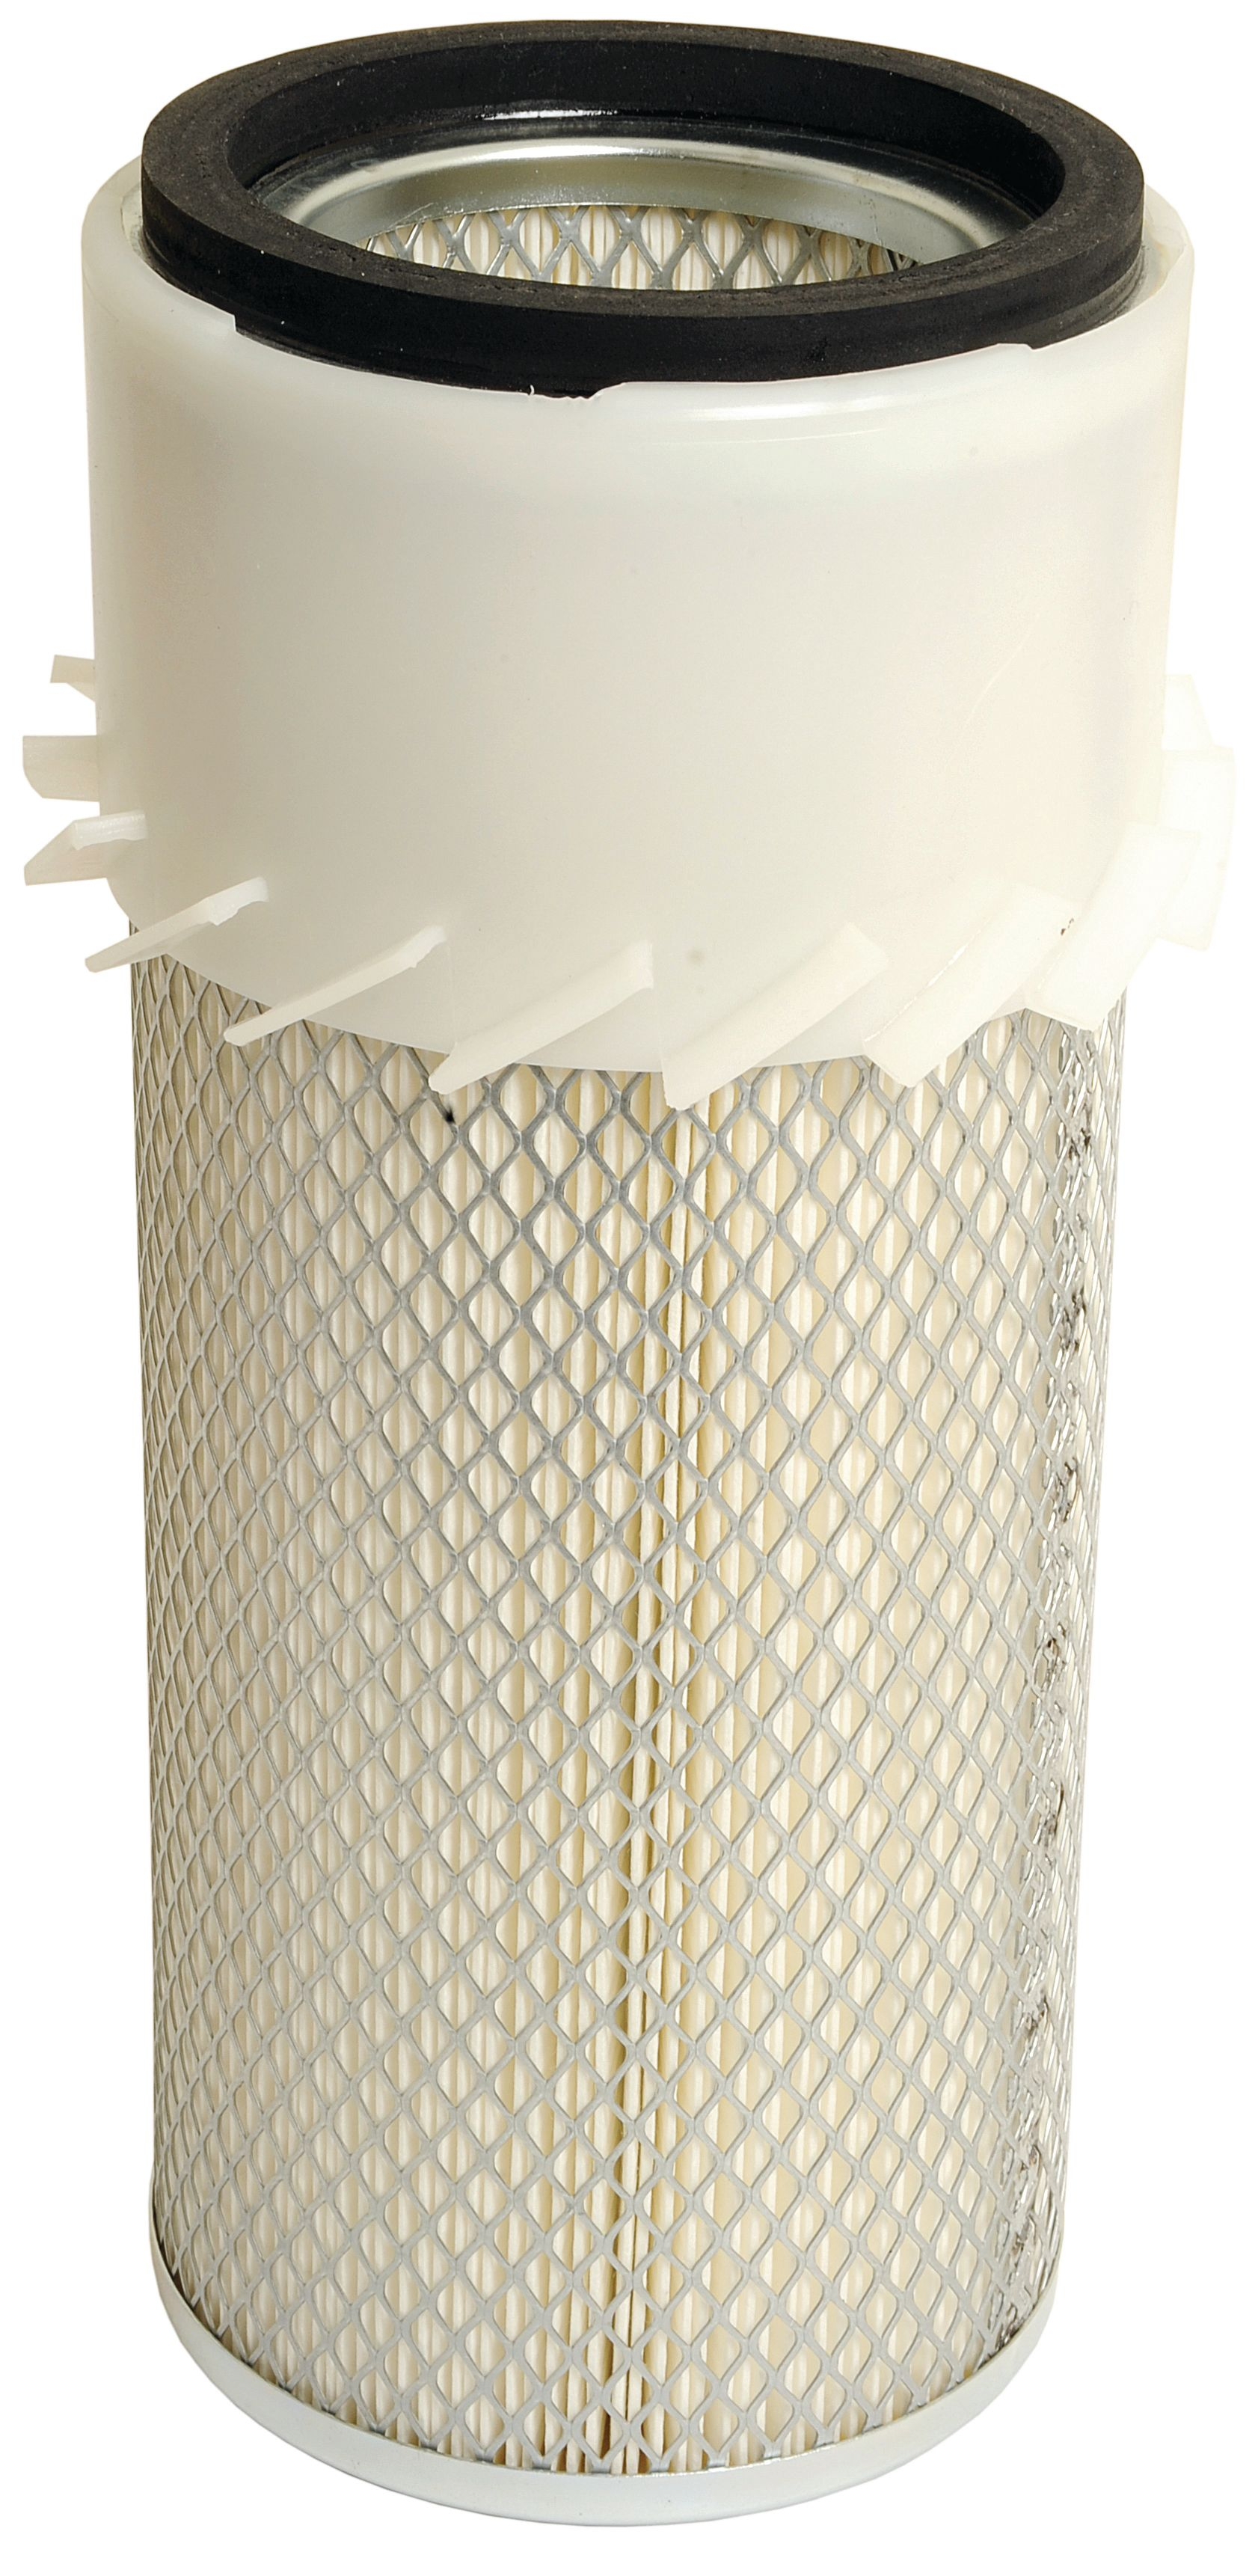 JOHN DEERE OUTER AIR FILTER 76335